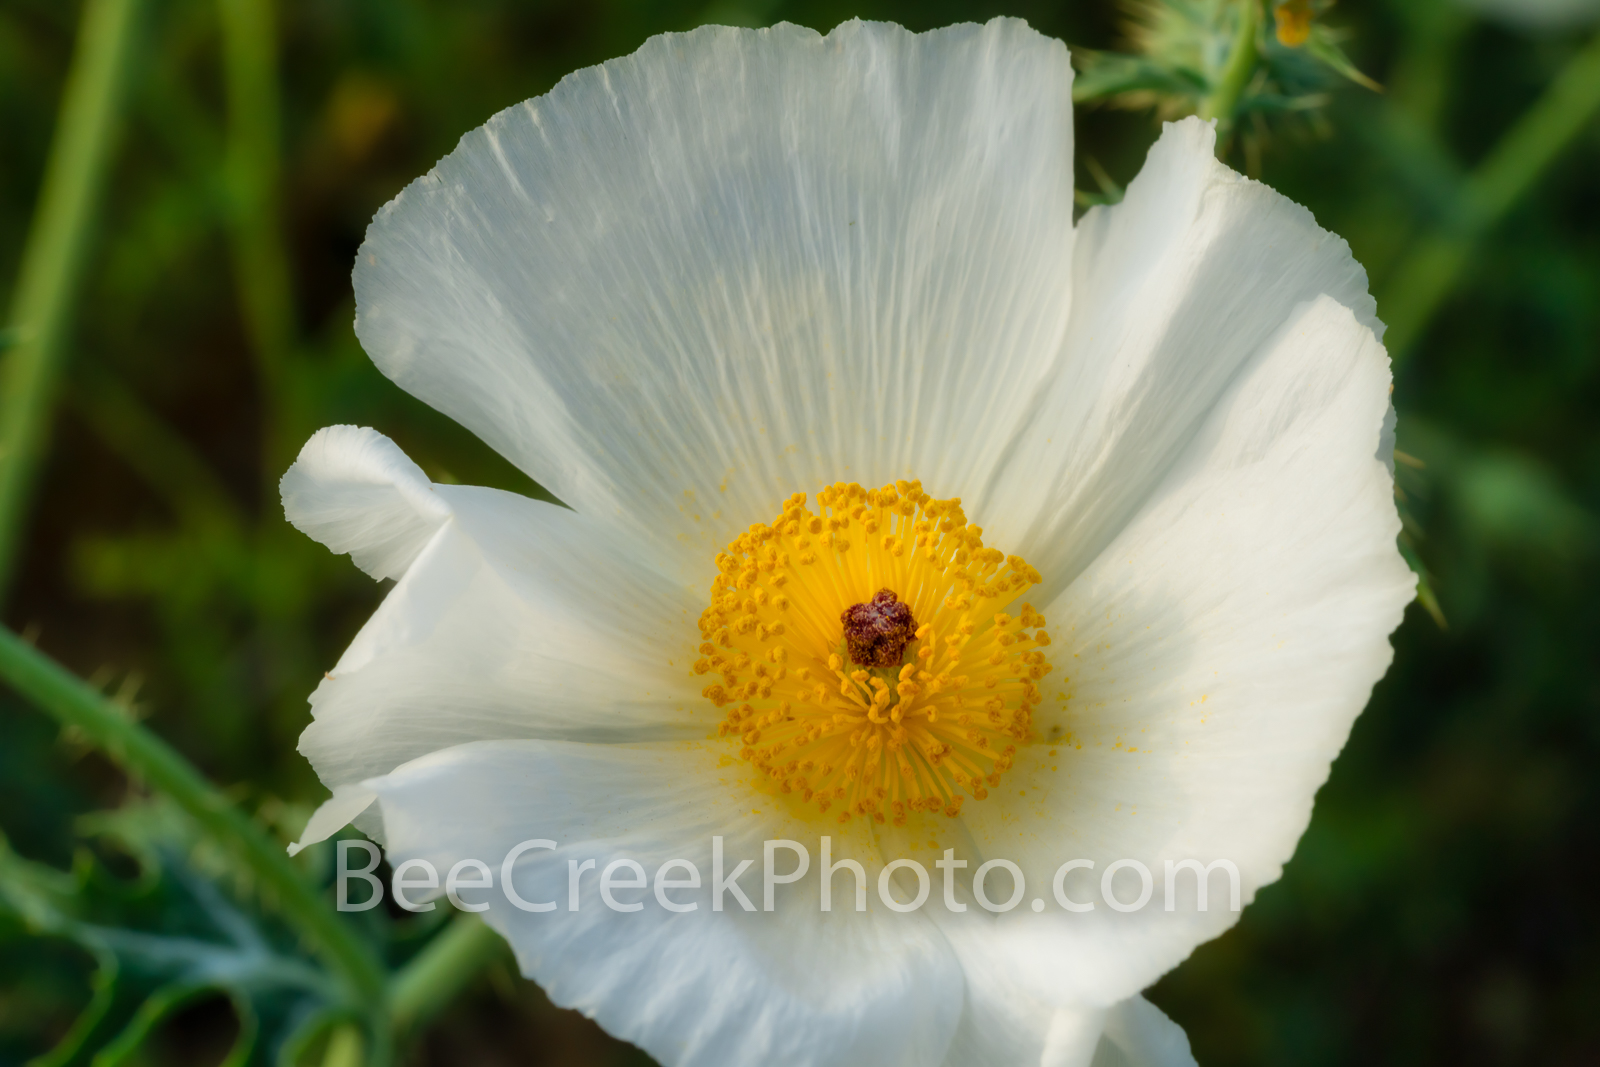 Texas Prickly Poppy 2 - We love the wildflowers in Texas even our prickly poppies.  Prickly poppies grow quite well in the Texas...